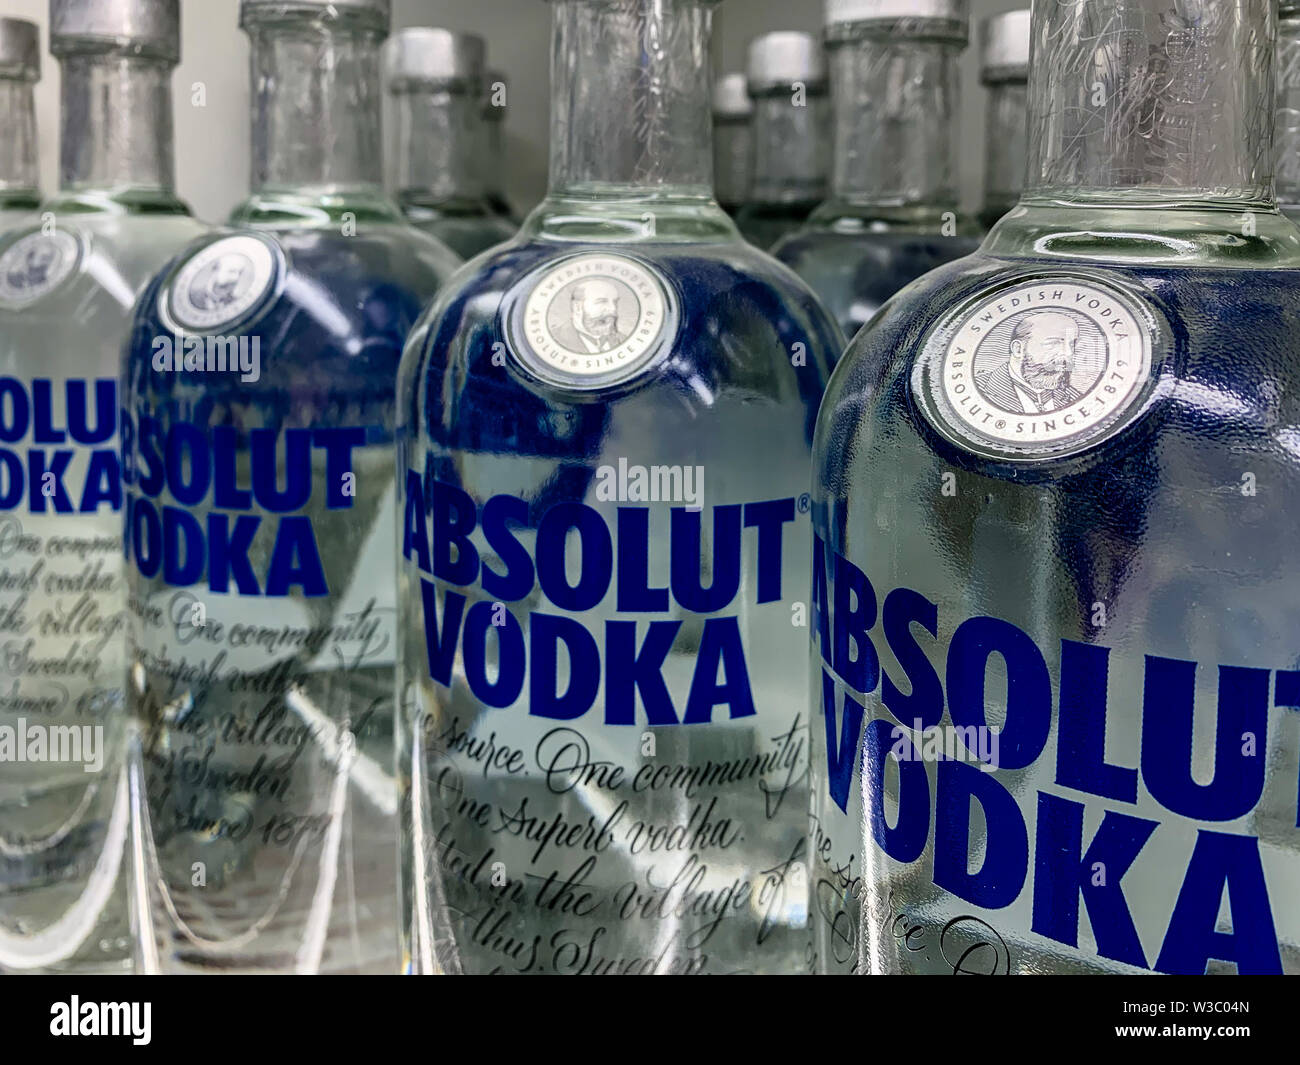 Vodka bottles on a shelf in a store  Absolut Vodka is a